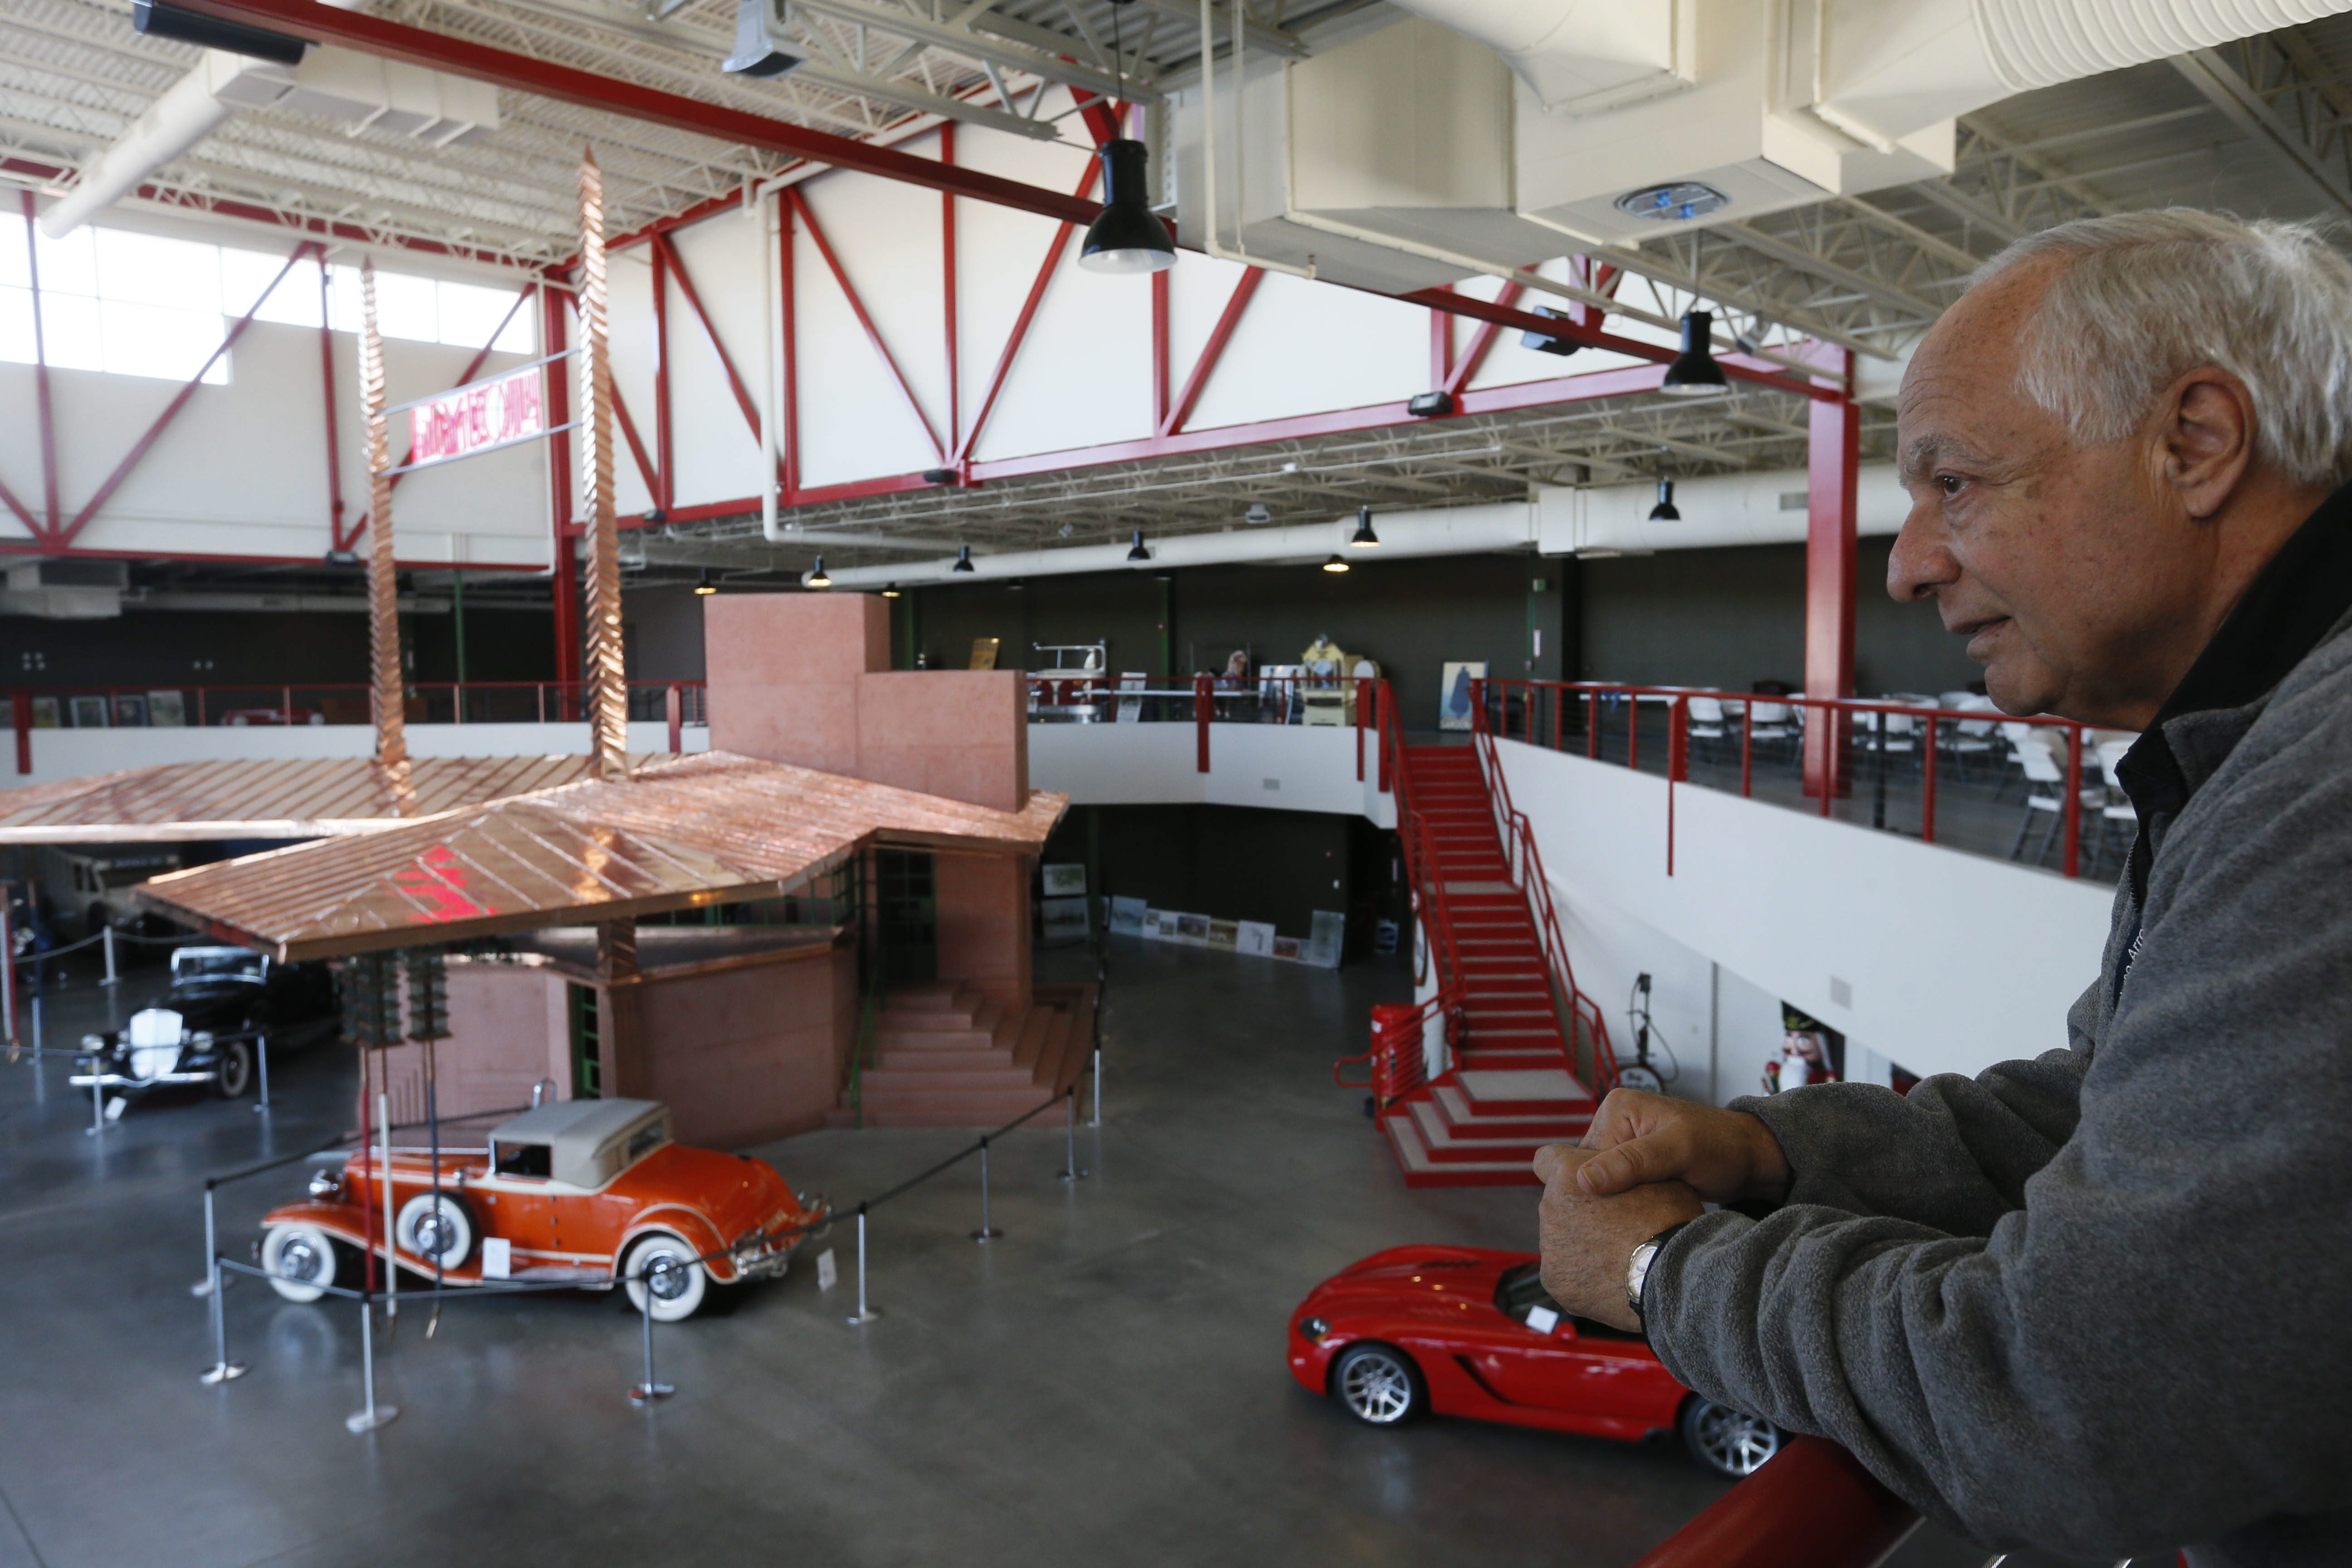 James Sandoro, who founded the Buffalo Transportation/Pierce-Arrow Museum downtown with his wife, Mary Ann, looks over the Frank Lloyd Wright Filling Station exhibit after their recent acquisition of adjacent property that will enable expansion to 300,000 square feet.